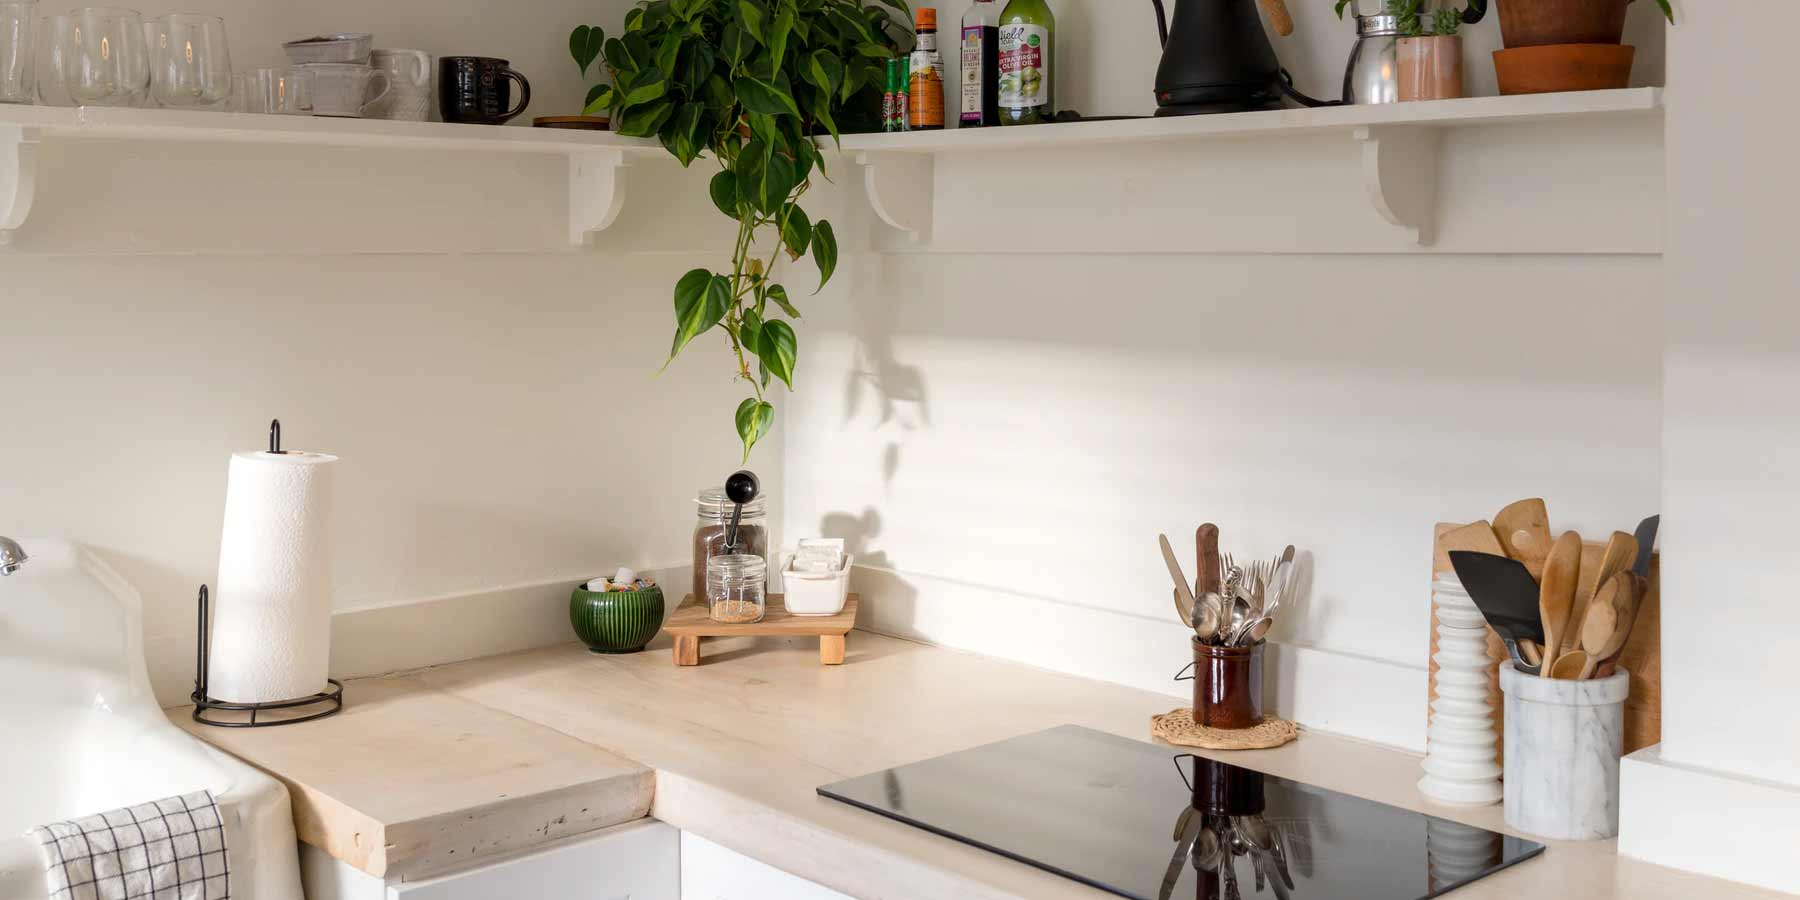 Boho Décor Ideas by RealCraft:  Kitchen space with light wood butcher block countertop